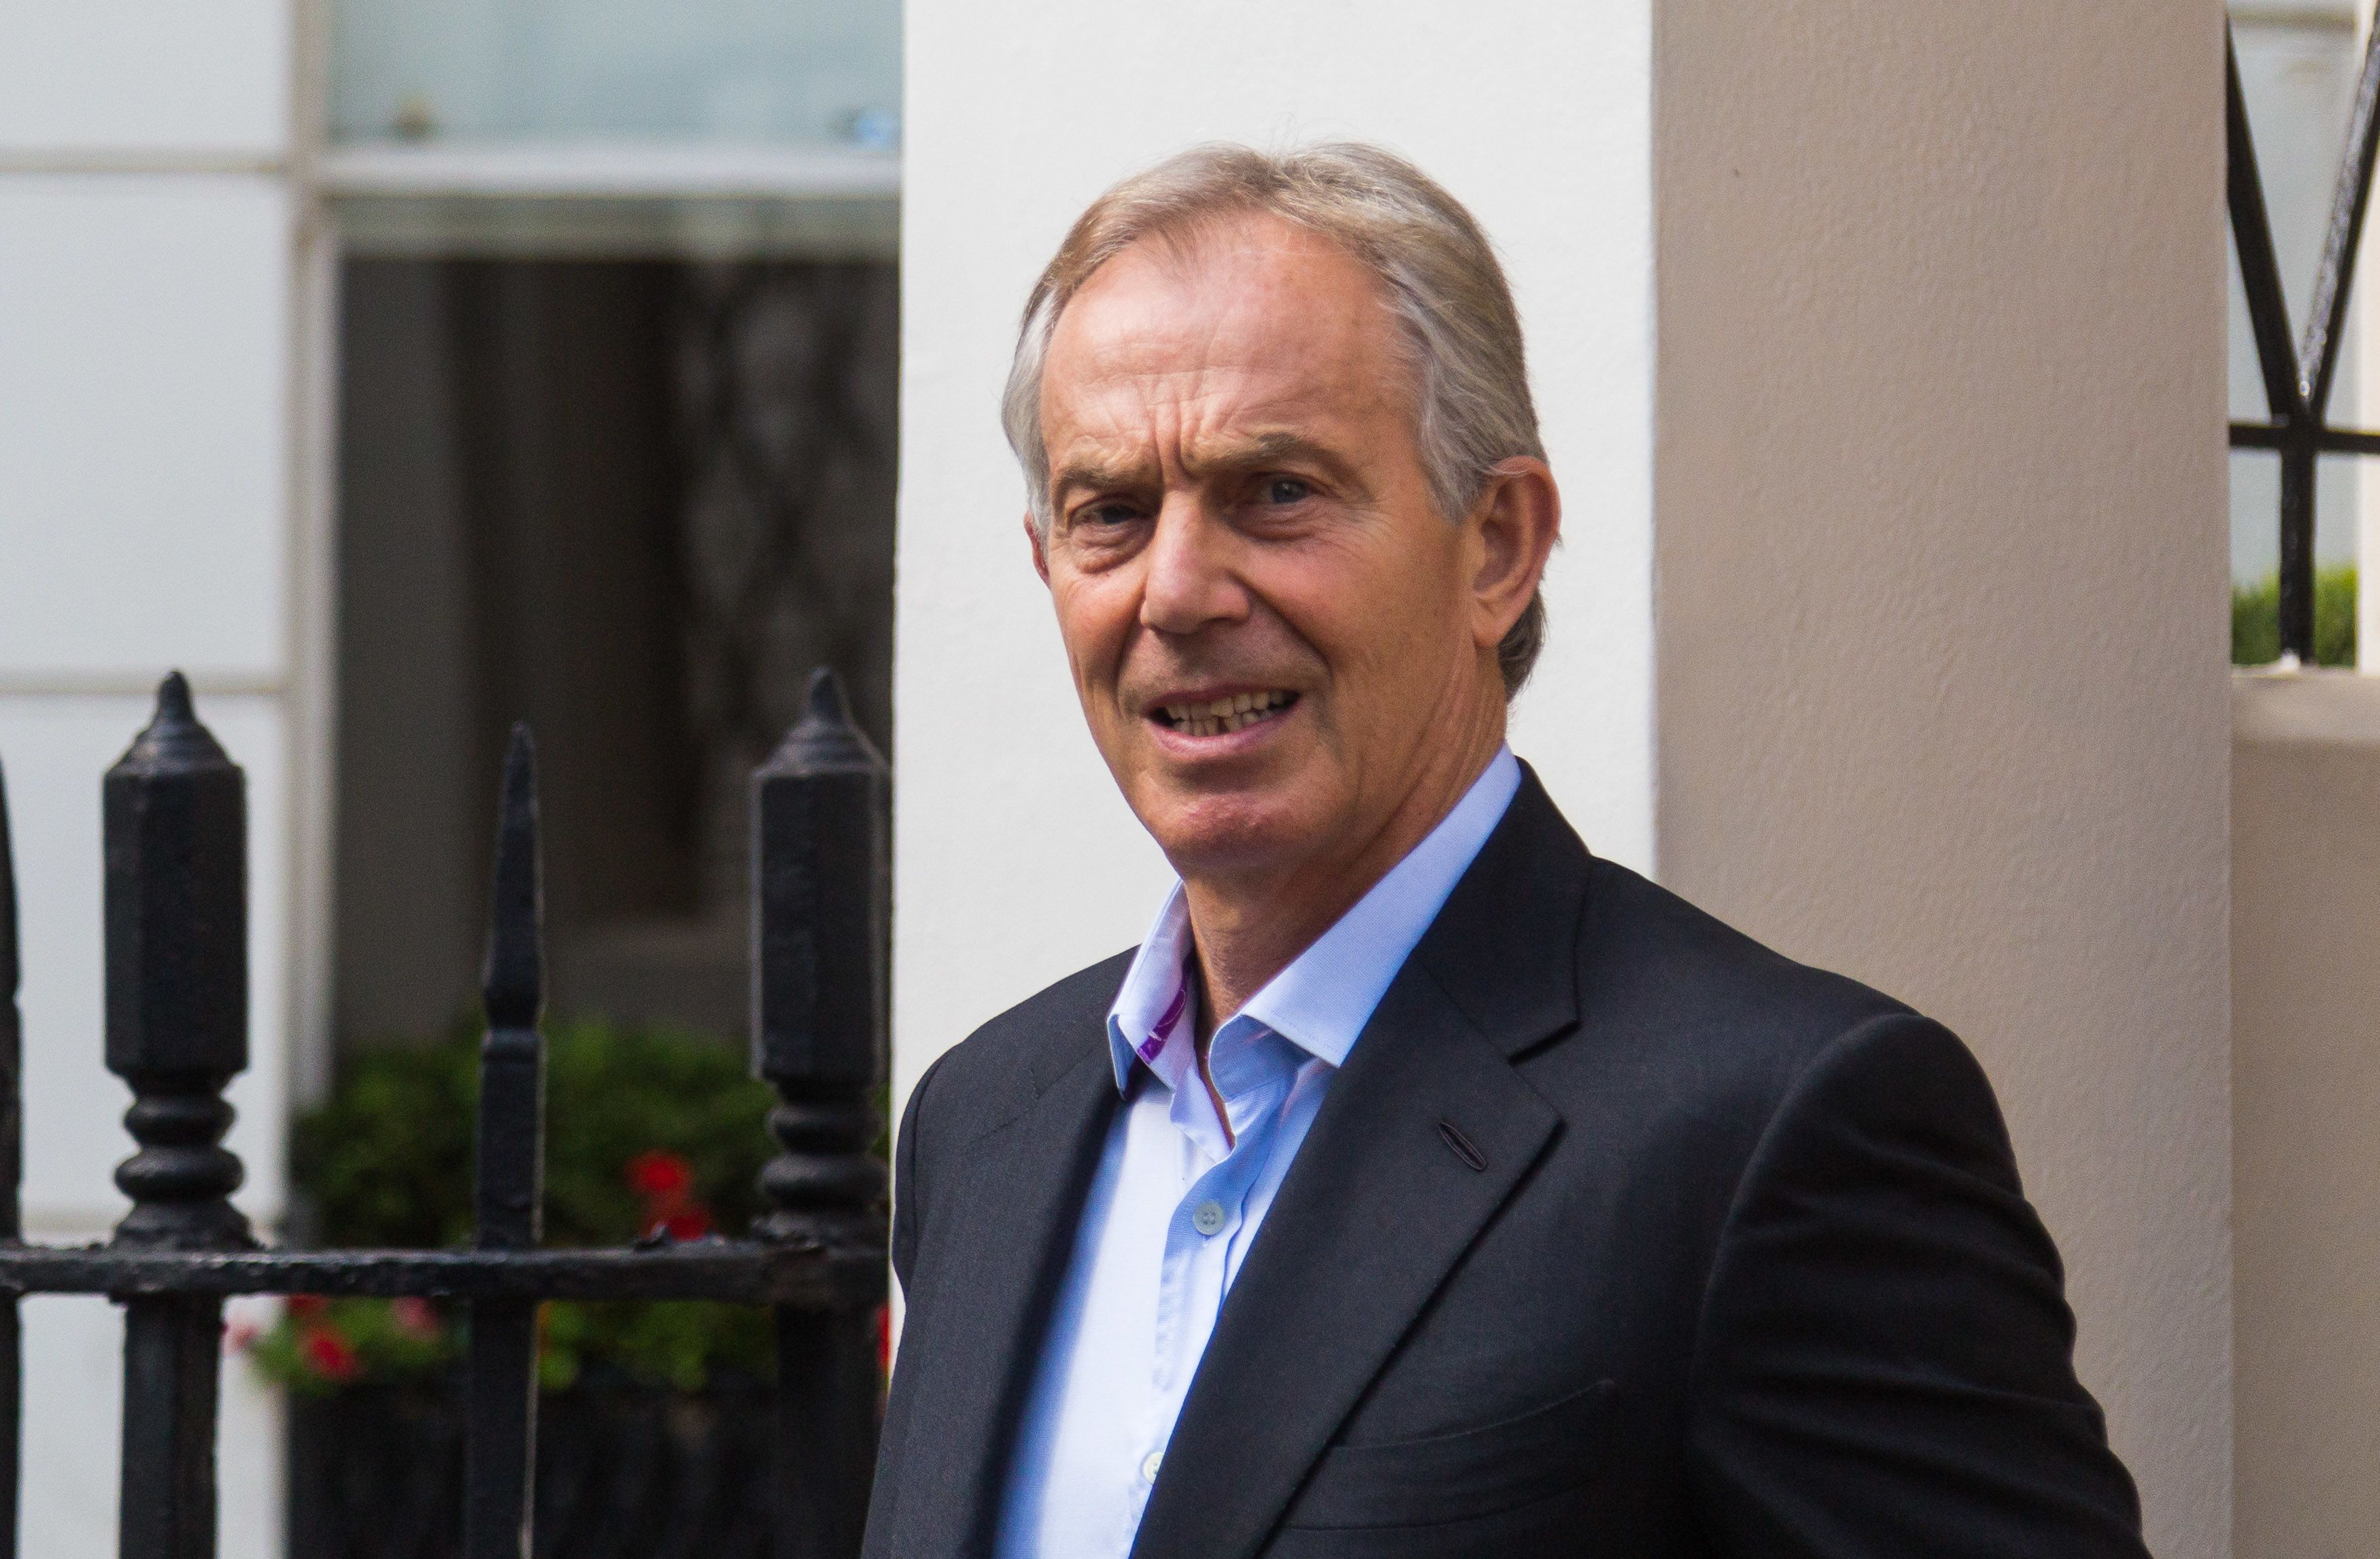 Tony Blair Says There's A Way Around Brexit, Which 'Absolutely' Must Not